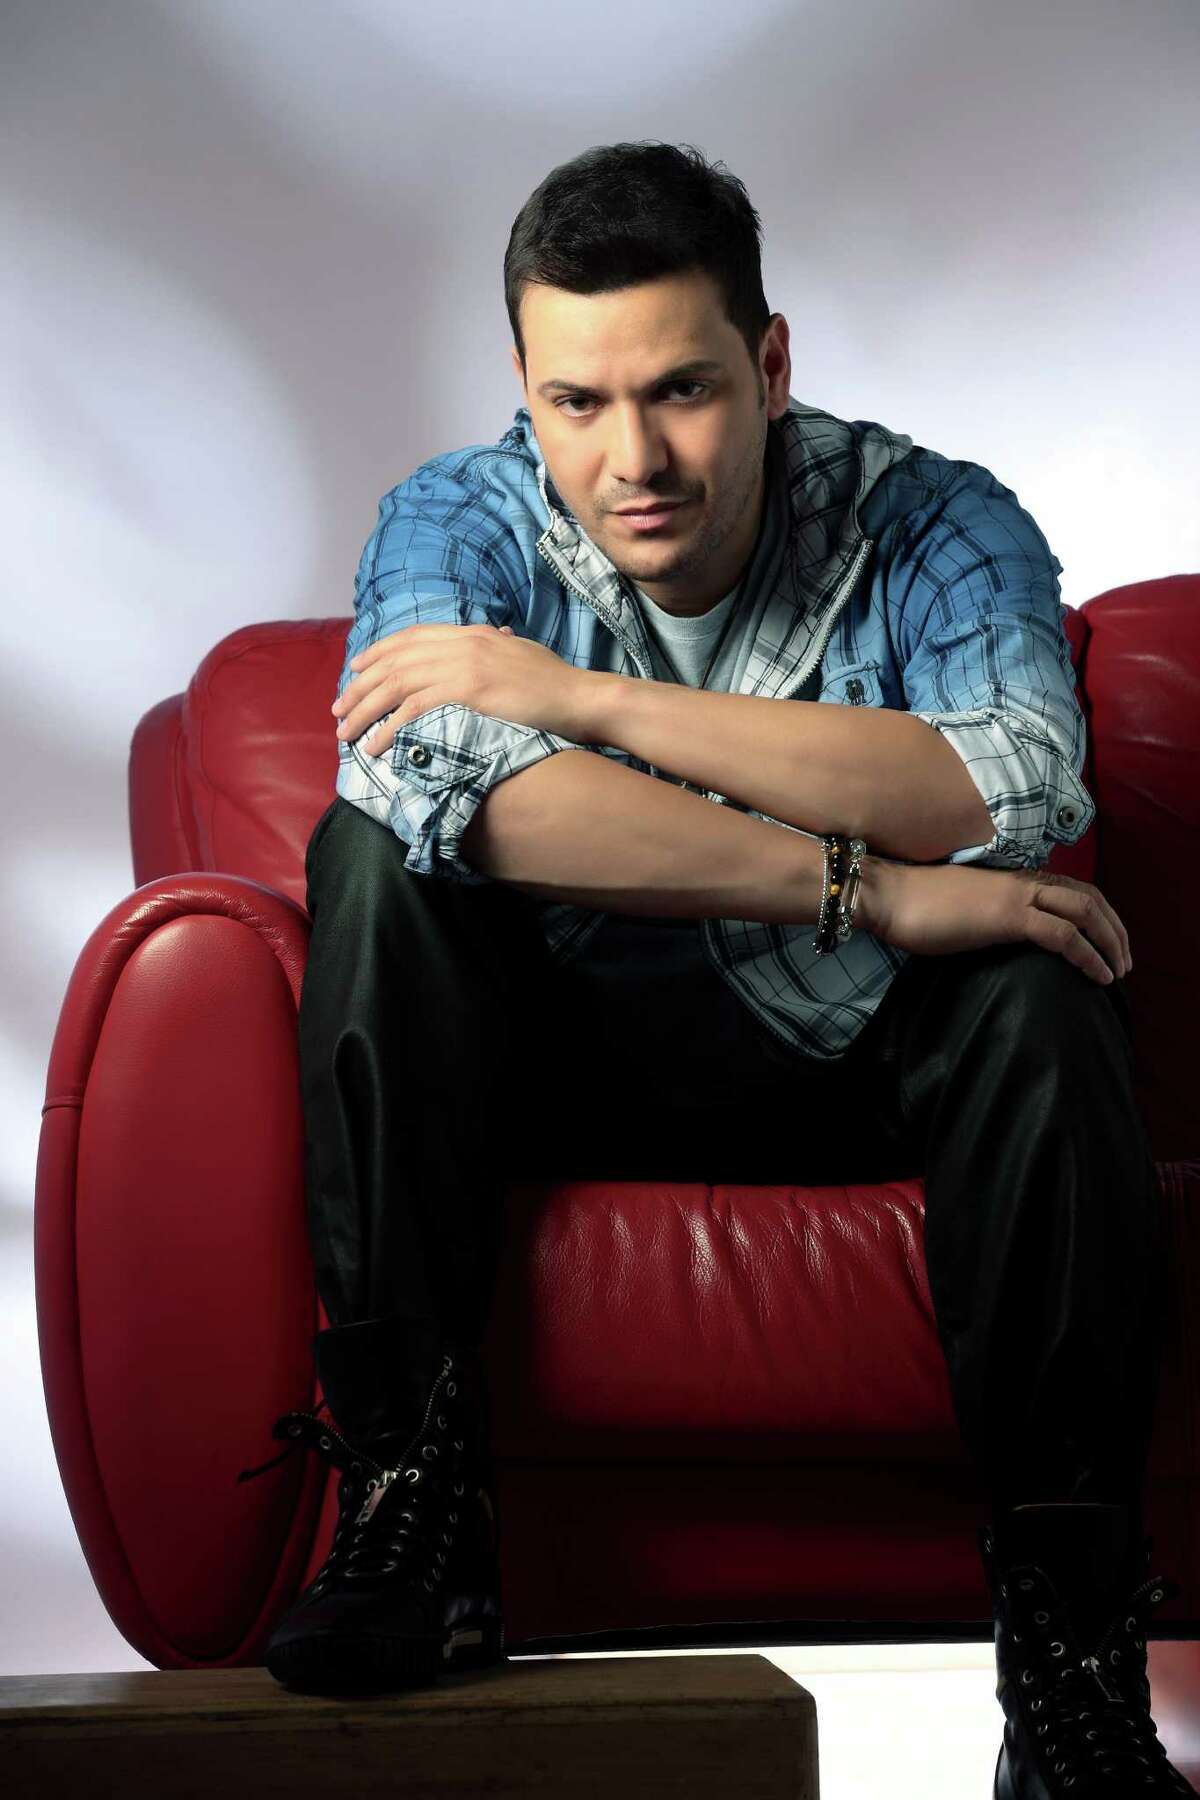 Victor Manuelle, November 4, 1968 in Bronx, New York, is a Puerto Rican American salsa singer.